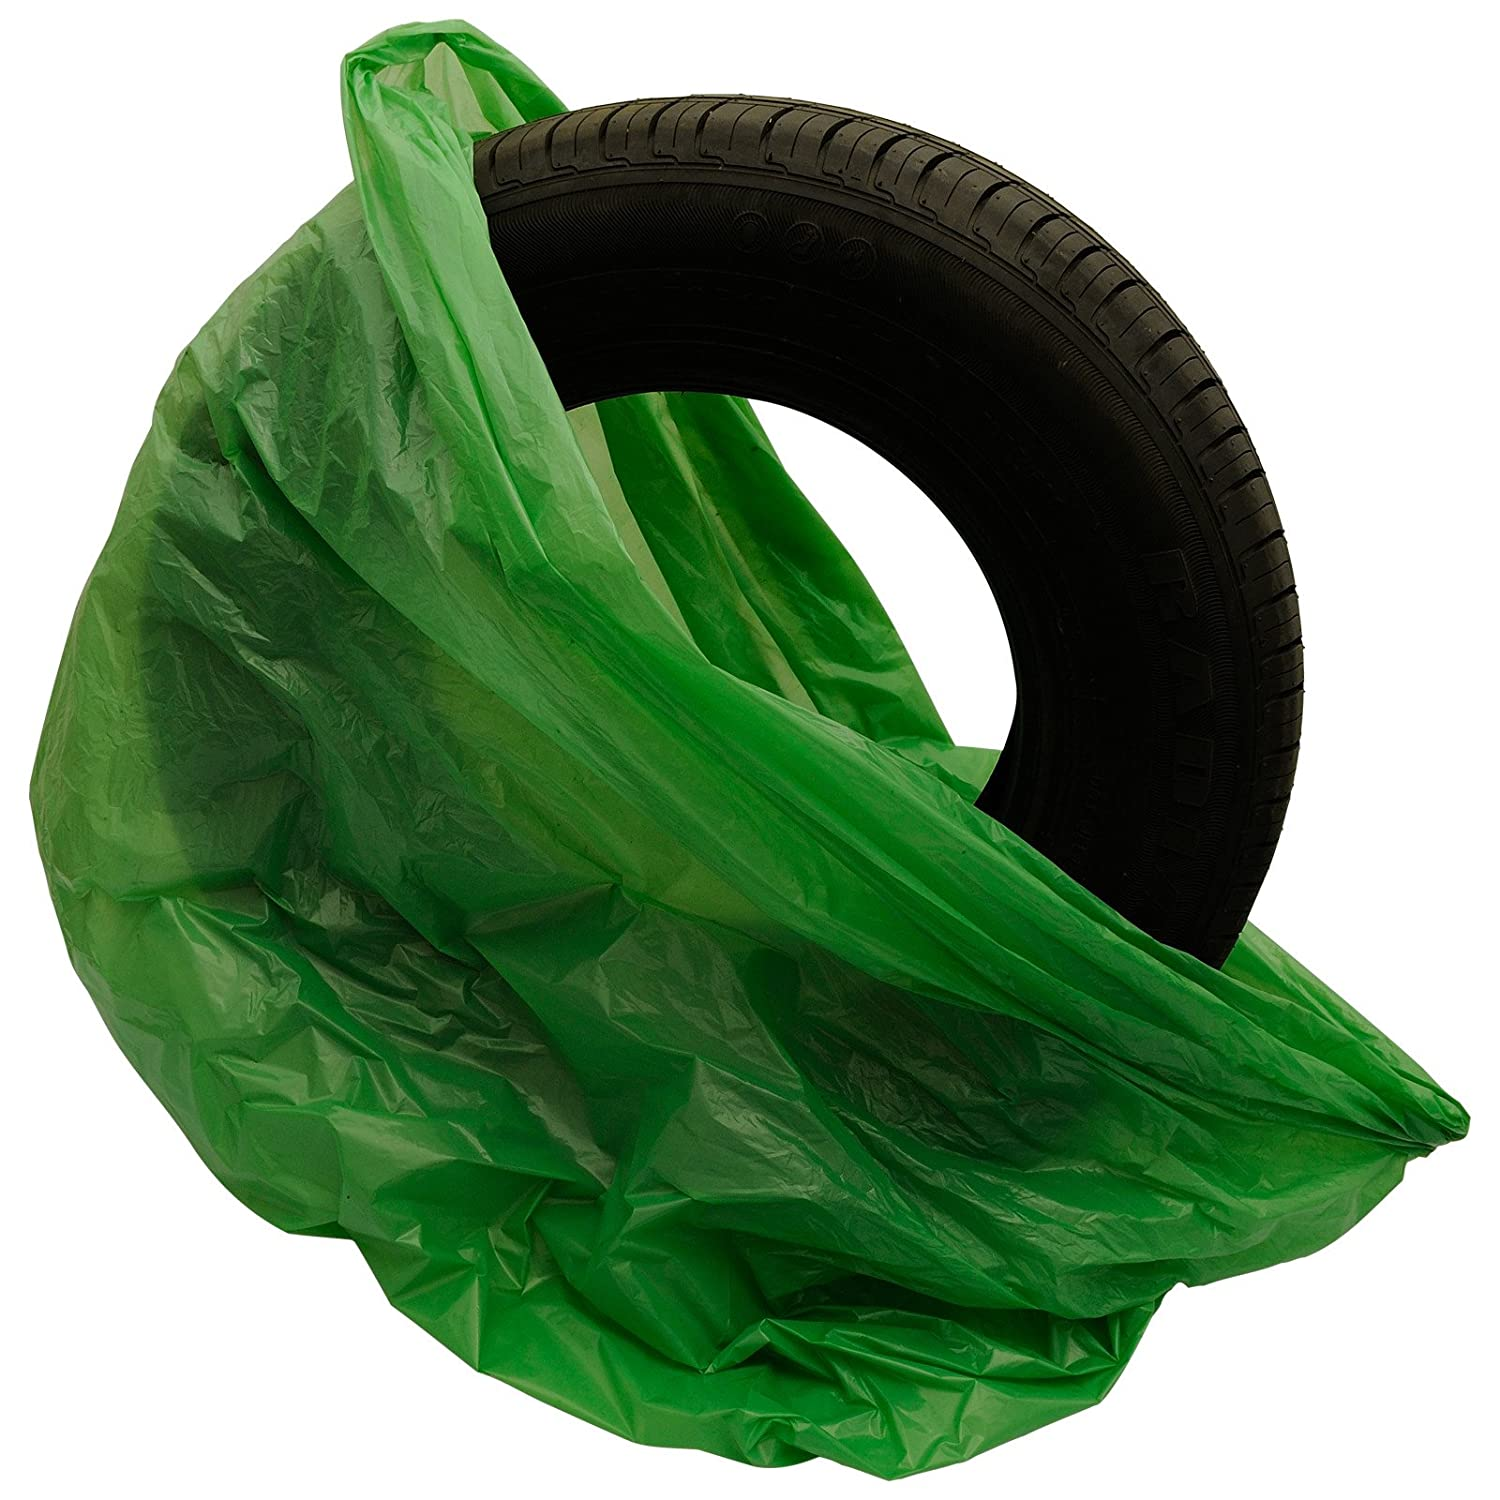 4x Tyre Bags XXL 100 x 100 cm // 1000x1000 mm Tyre Bags Tyre Covers Tyre Sac Tyre Case Up To 22' Haskyy